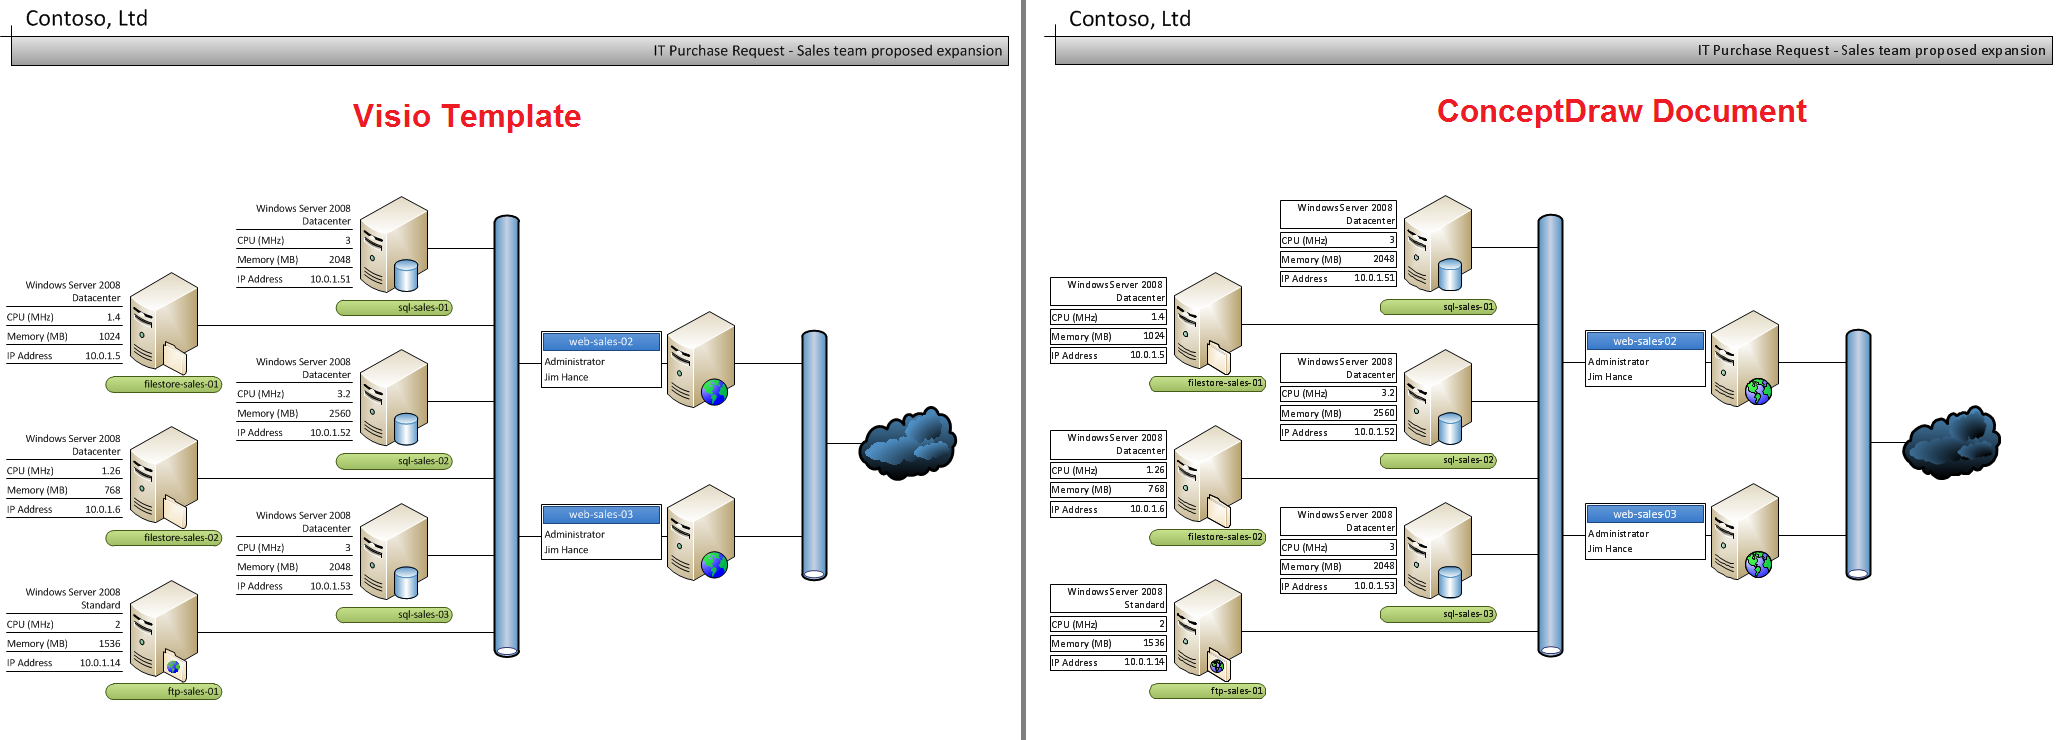 visio detailed network diagram template - conceptdraw pro compatibility with ms visio